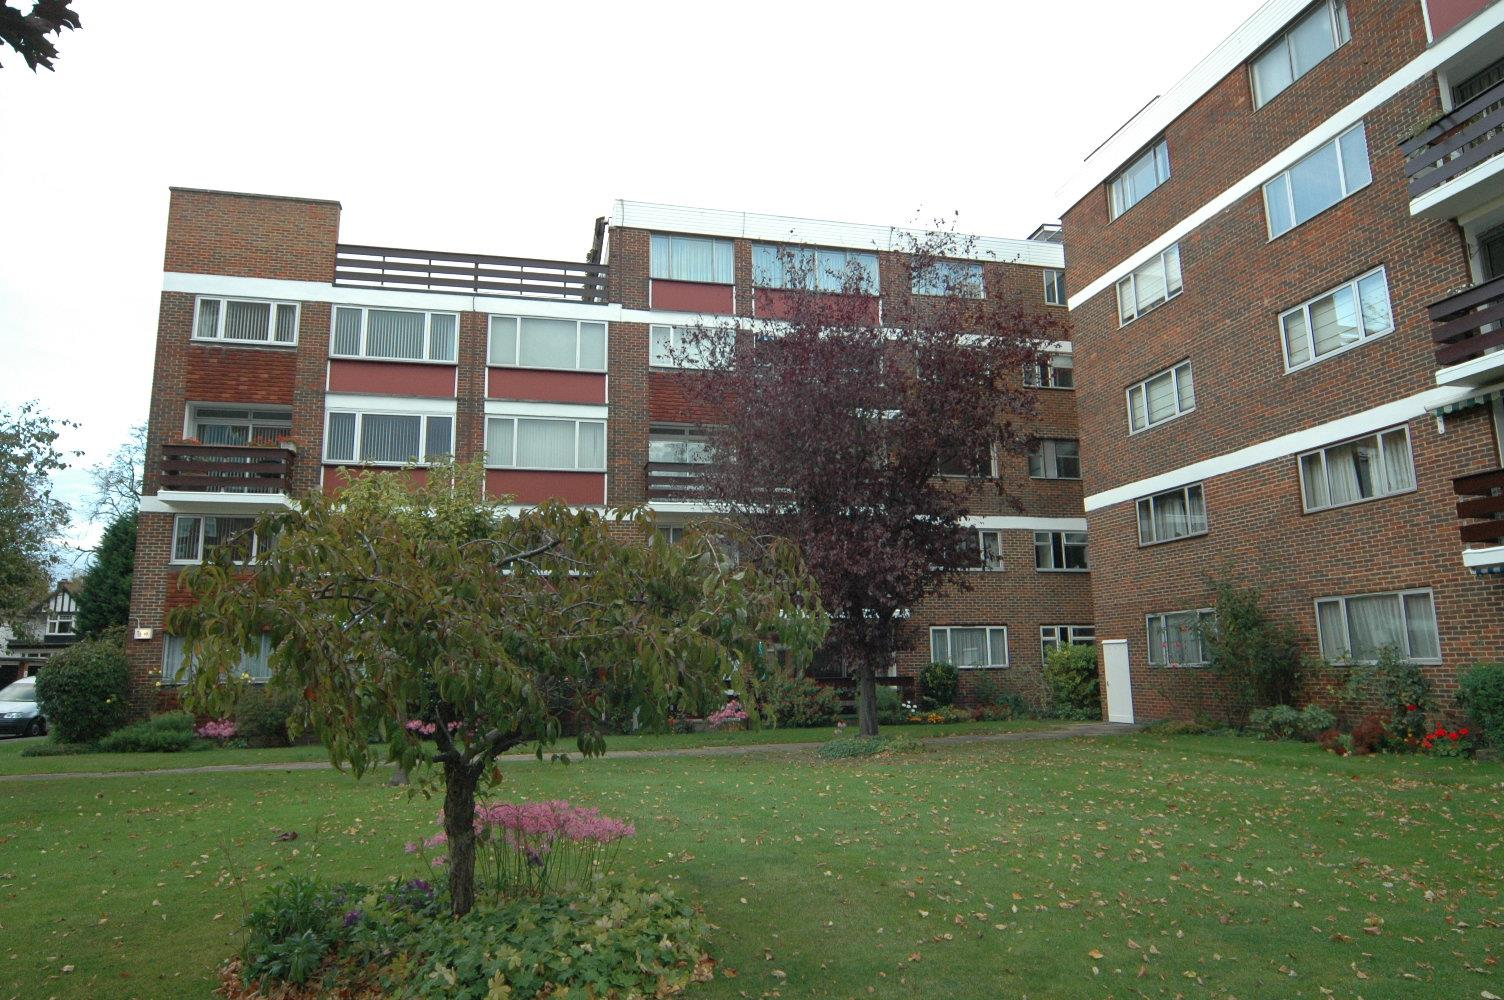 Sold - Thackeray Court Ealing W5